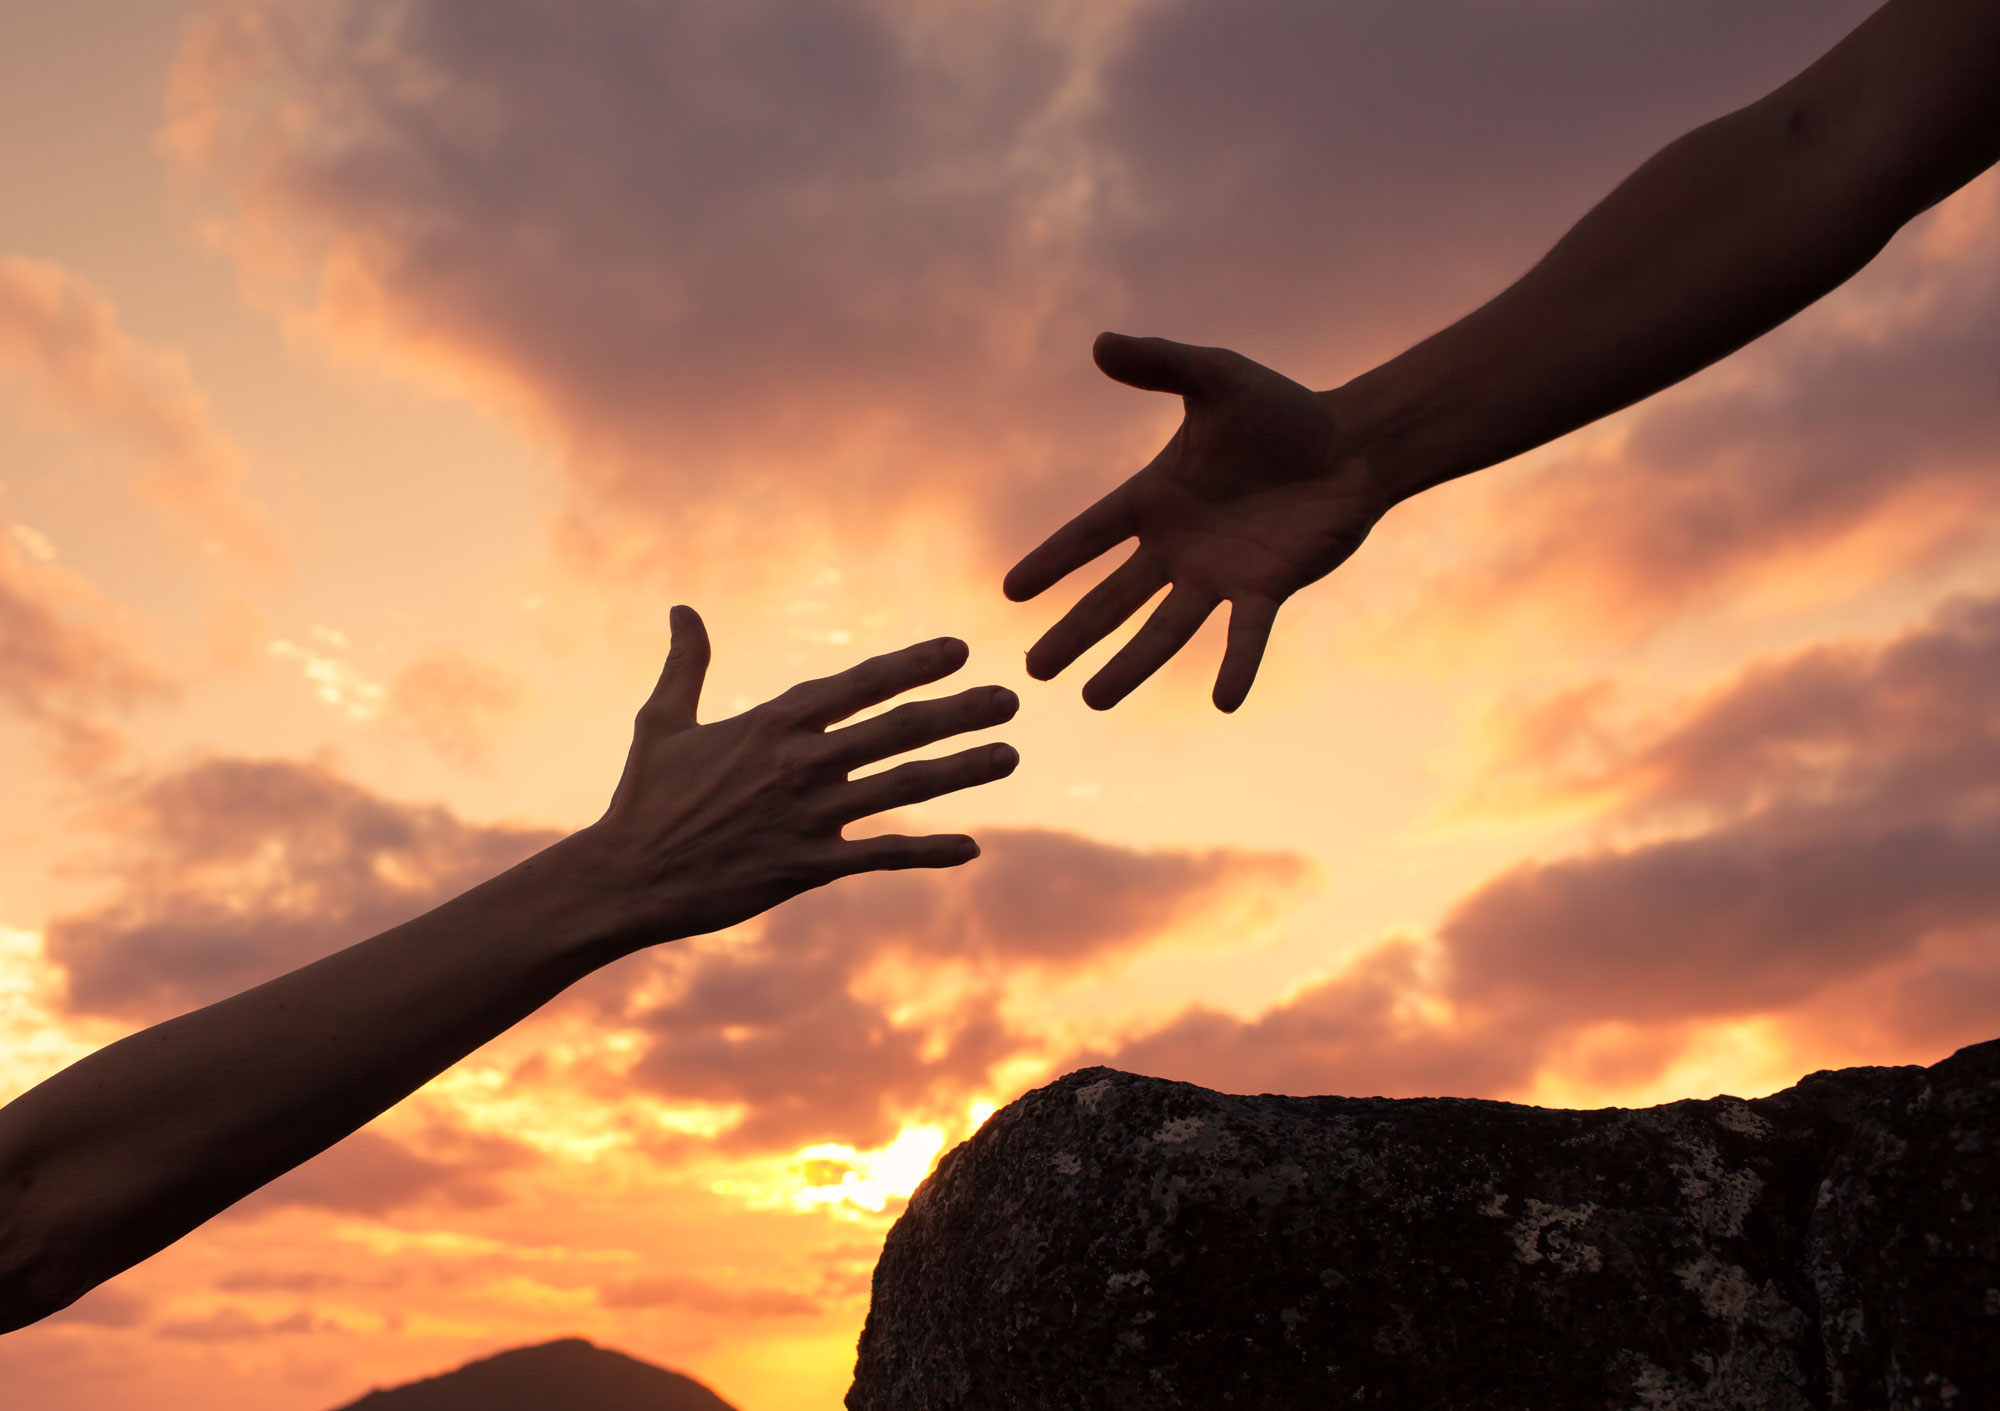 helping others, Painful Lessons Forge Path to Helping Others